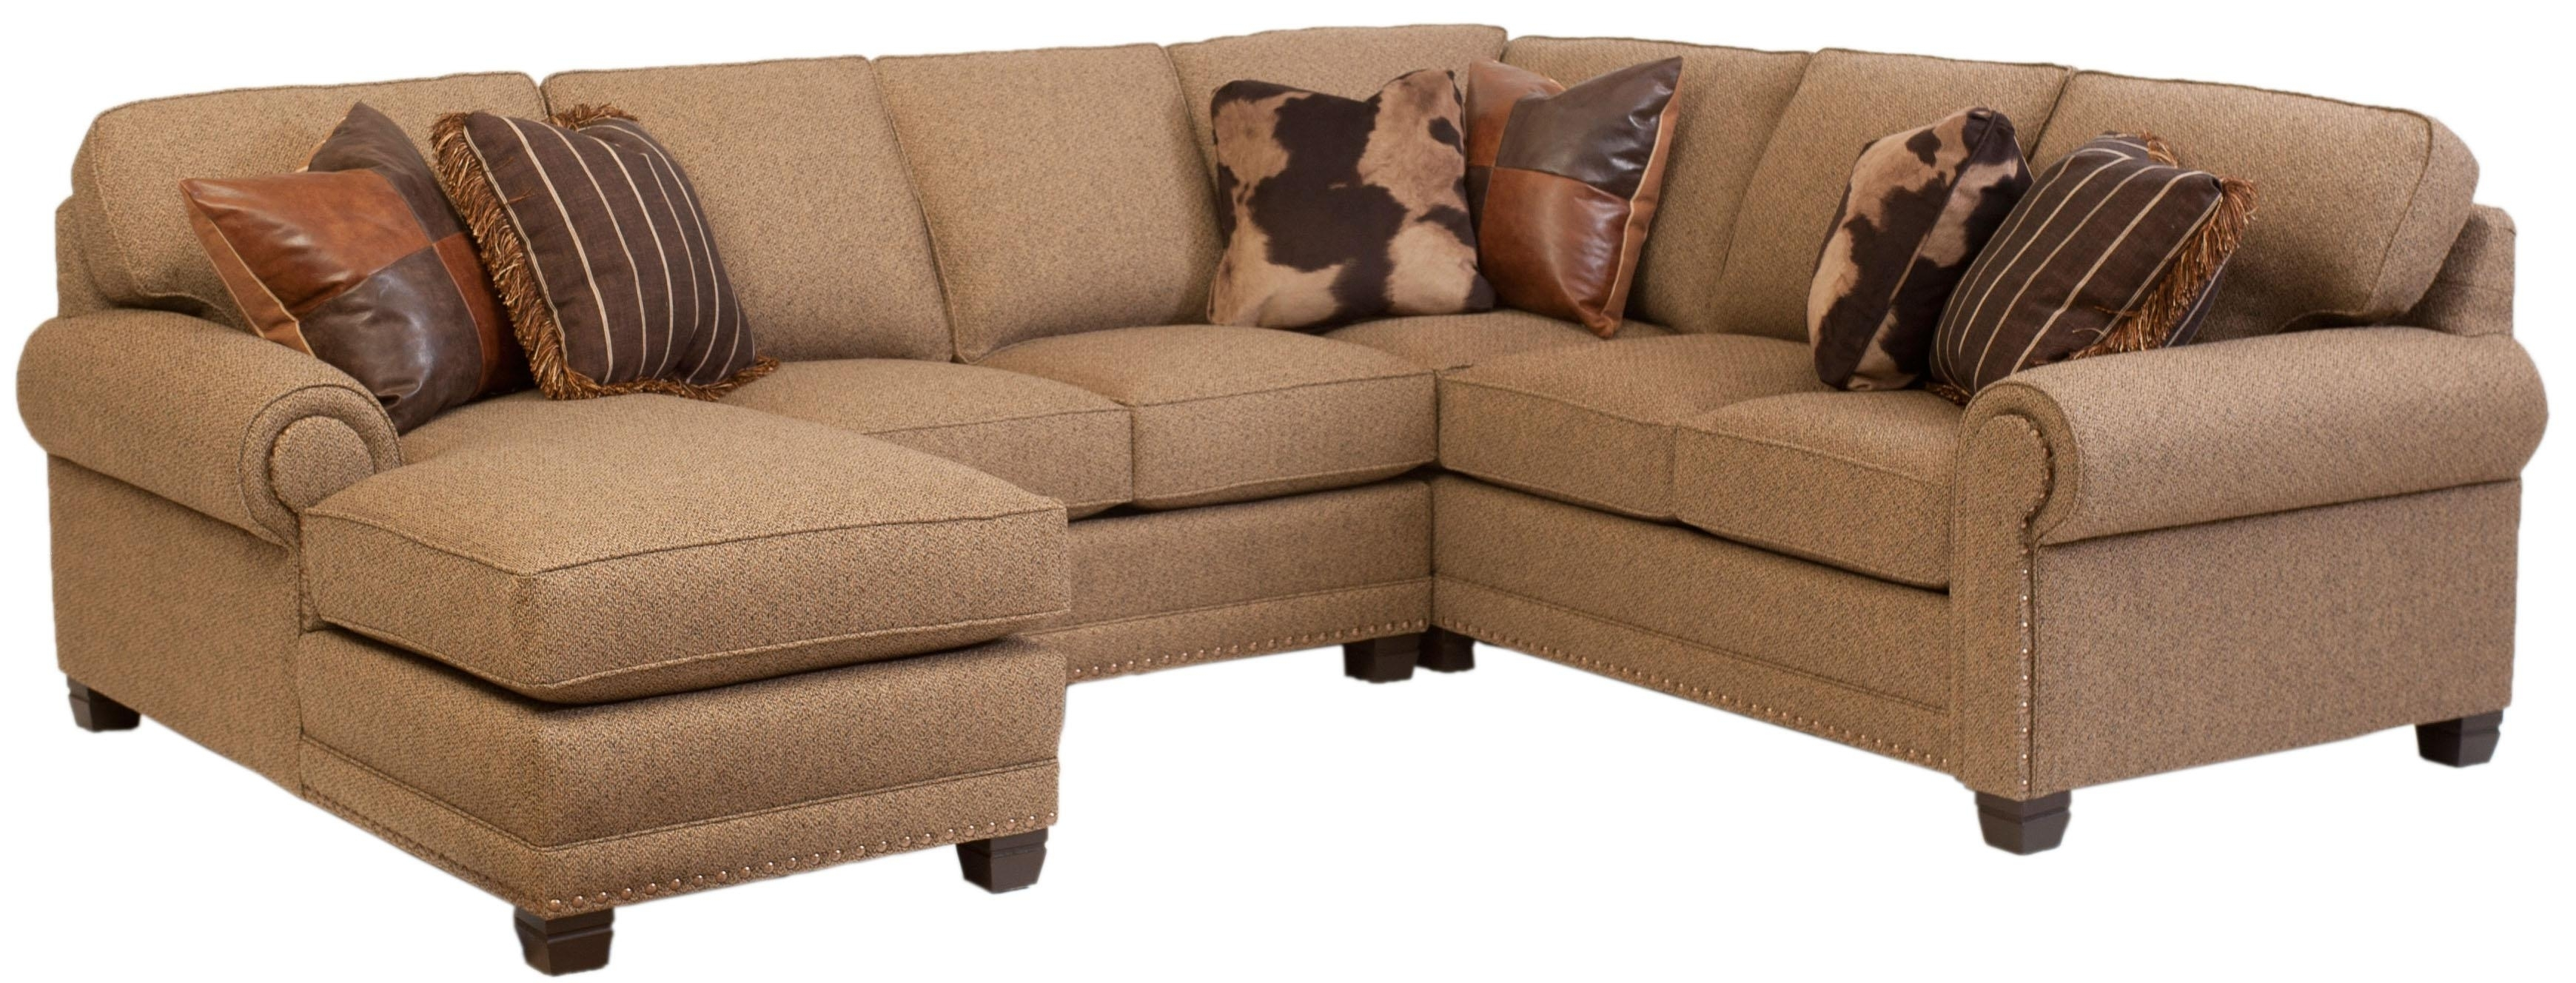 Remarkable 3 Piece Leather Sectional Sofa With Chaise 48 For In Gordon 3 Piece Sectionals With Raf Chaise (Image 20 of 25)